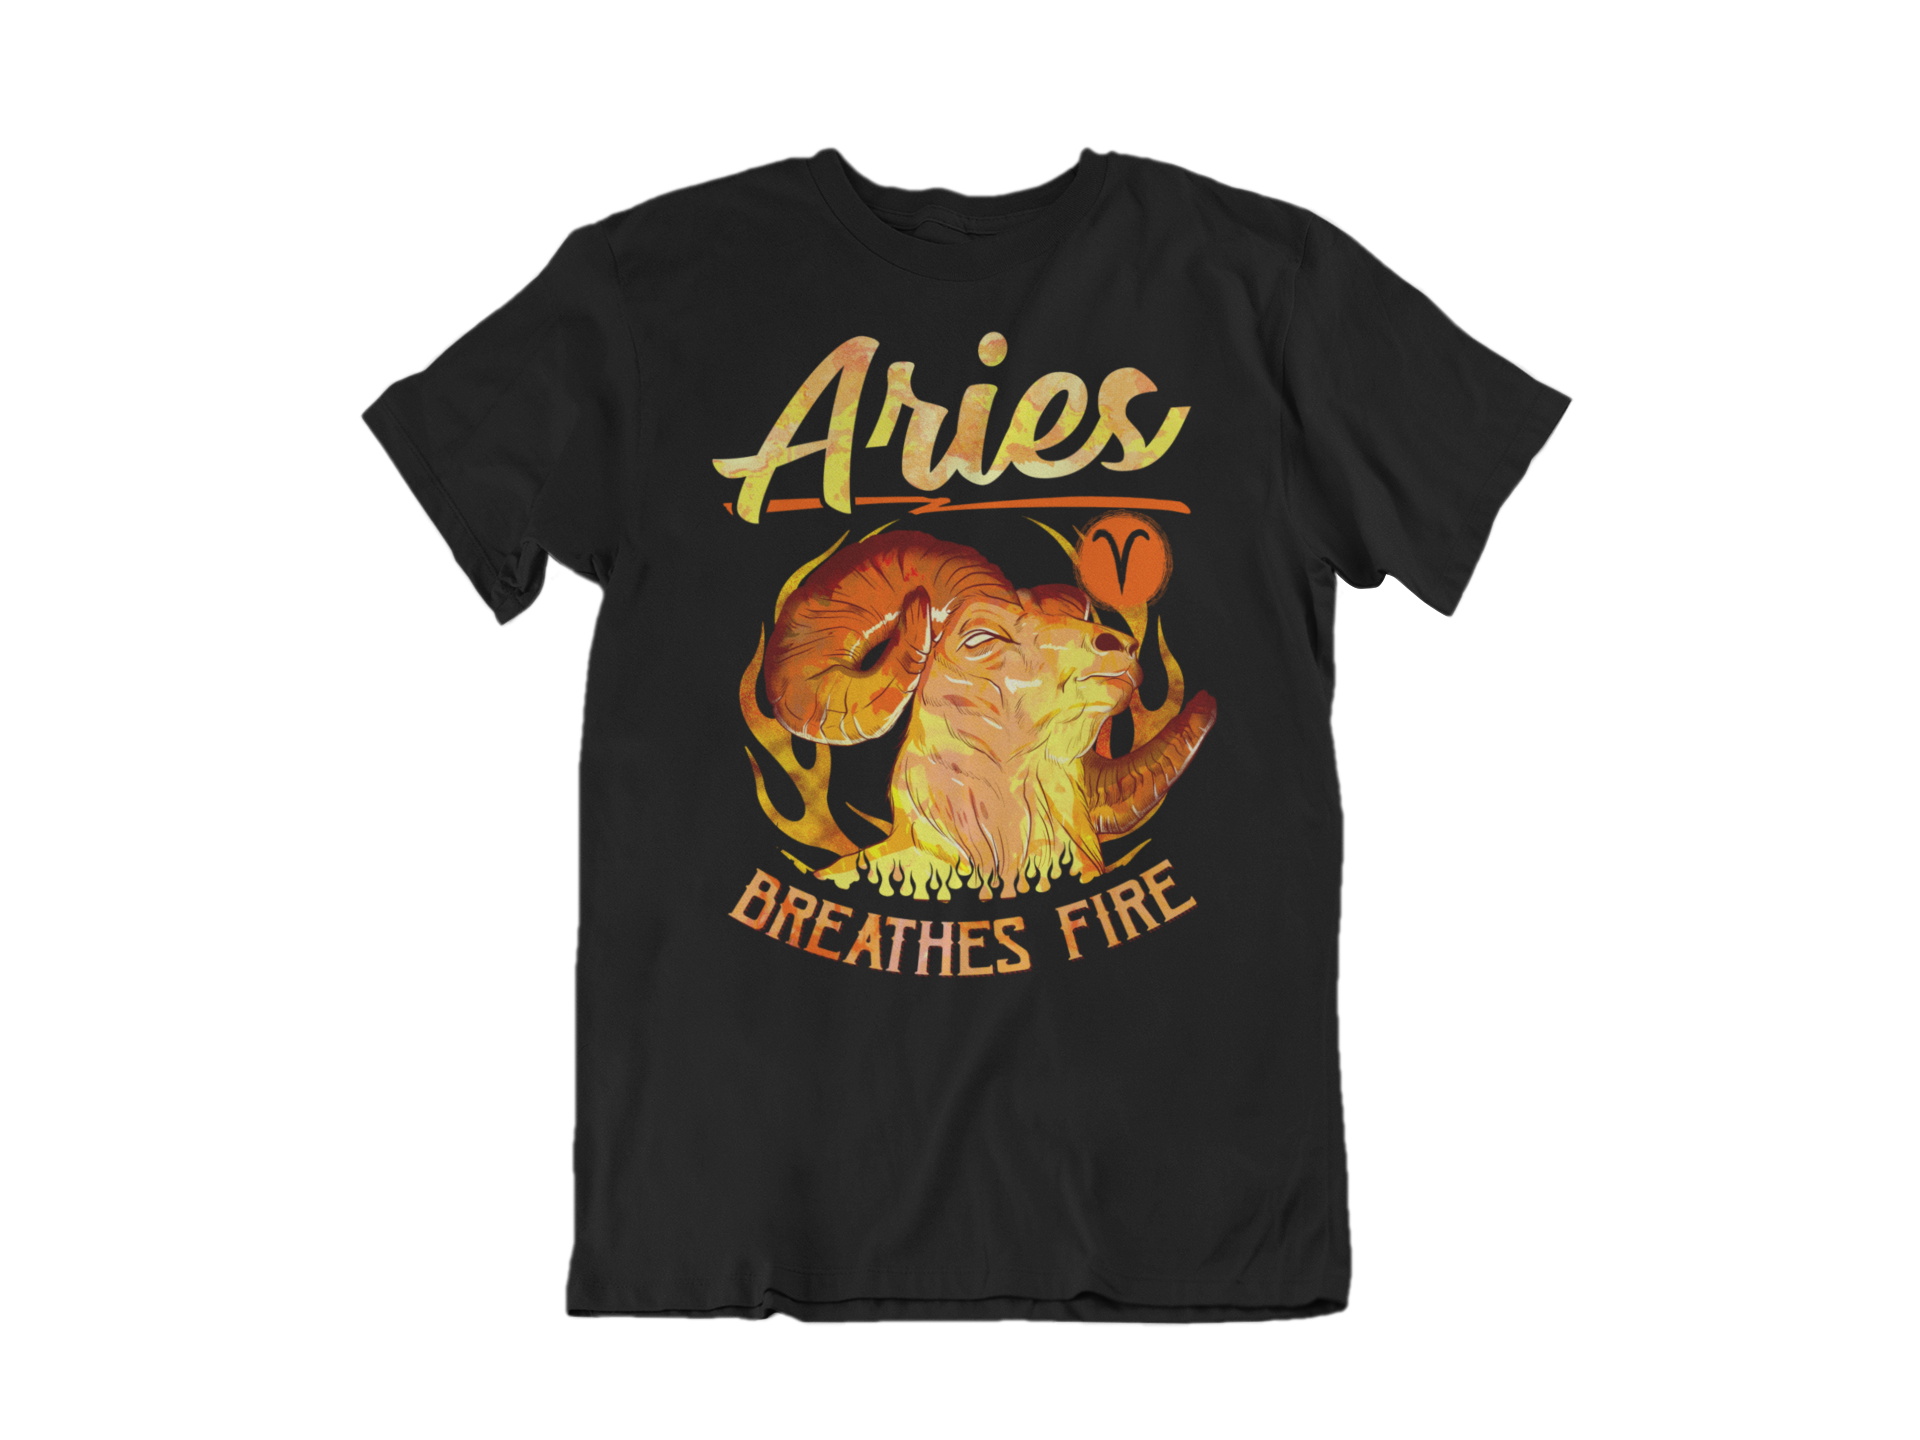 Aries Breathes Fire